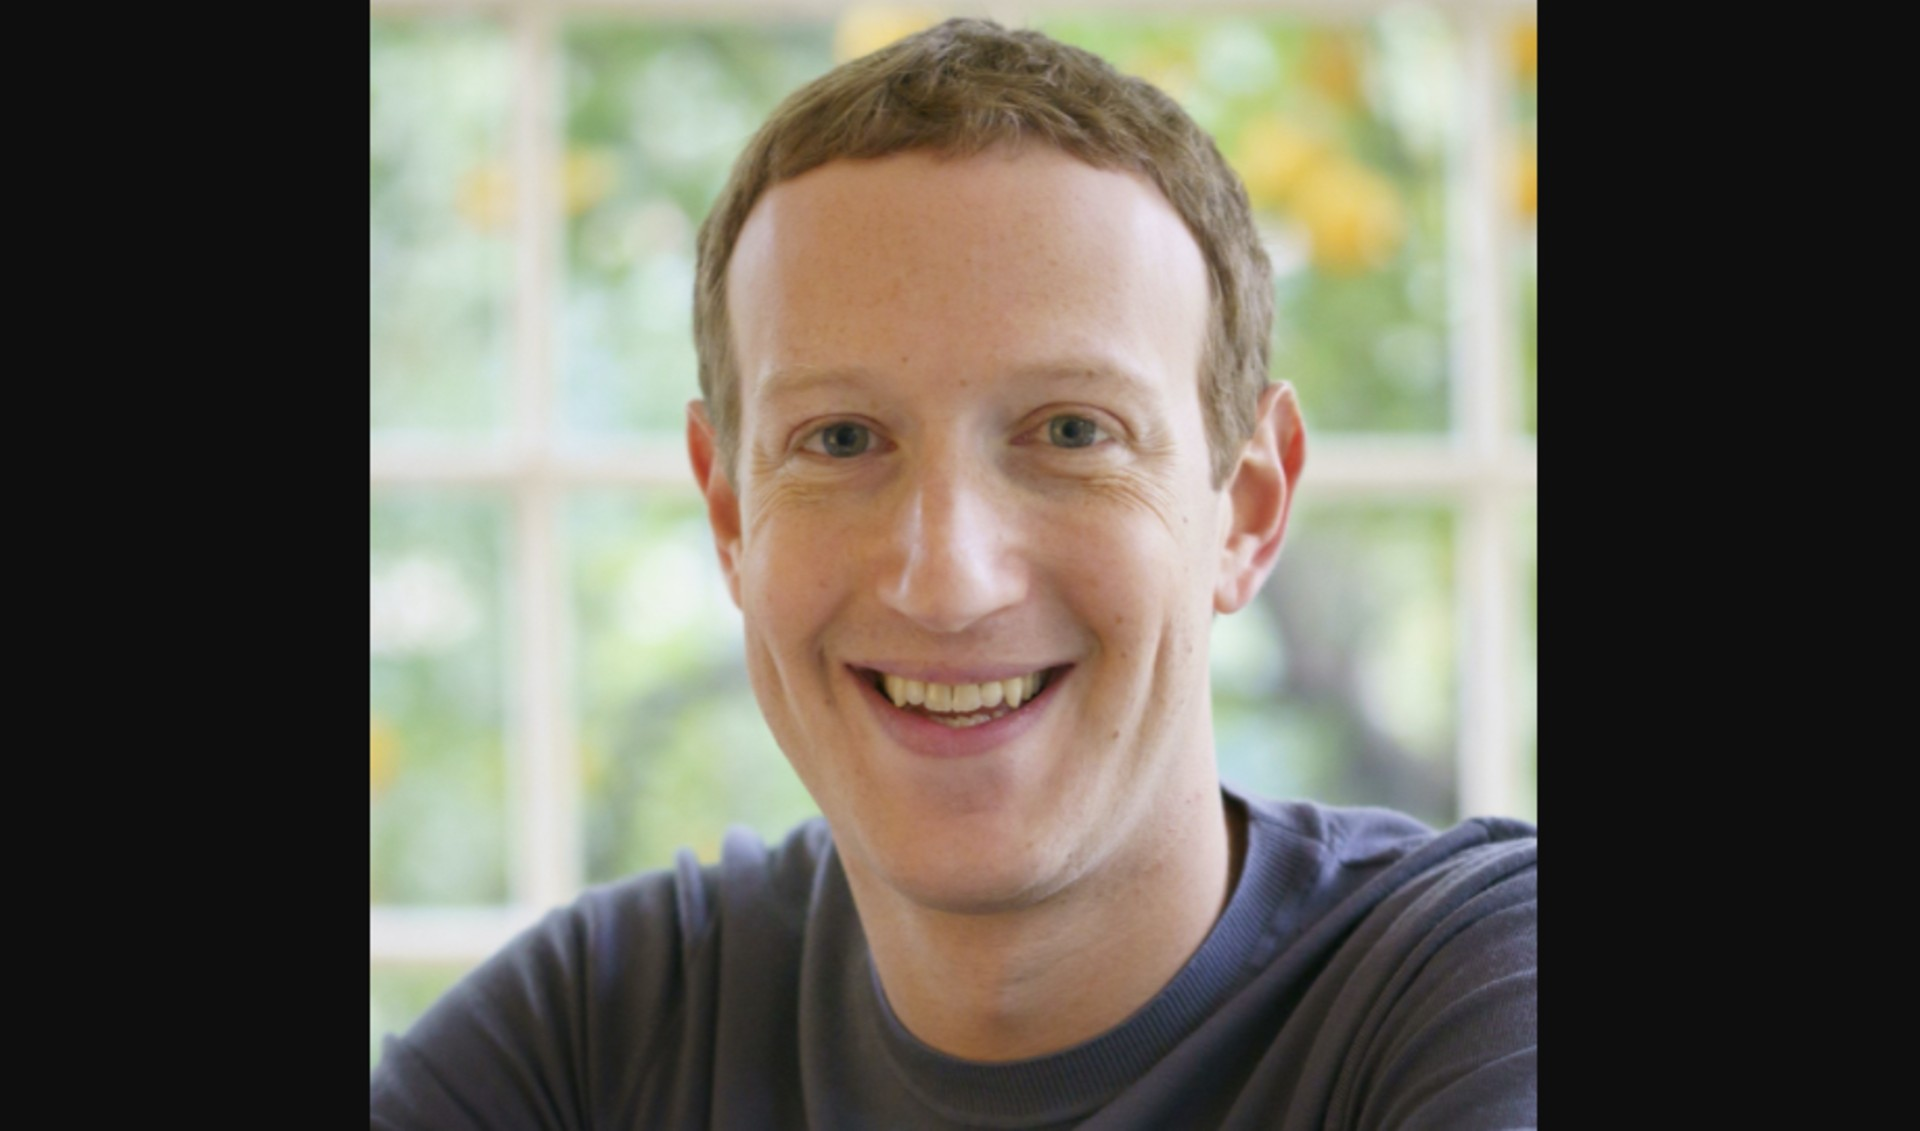 In Jab At Apple, Mark Zuckerberg Vows Facebook Won't Take A Cut Of Creator Revenues Until 2023